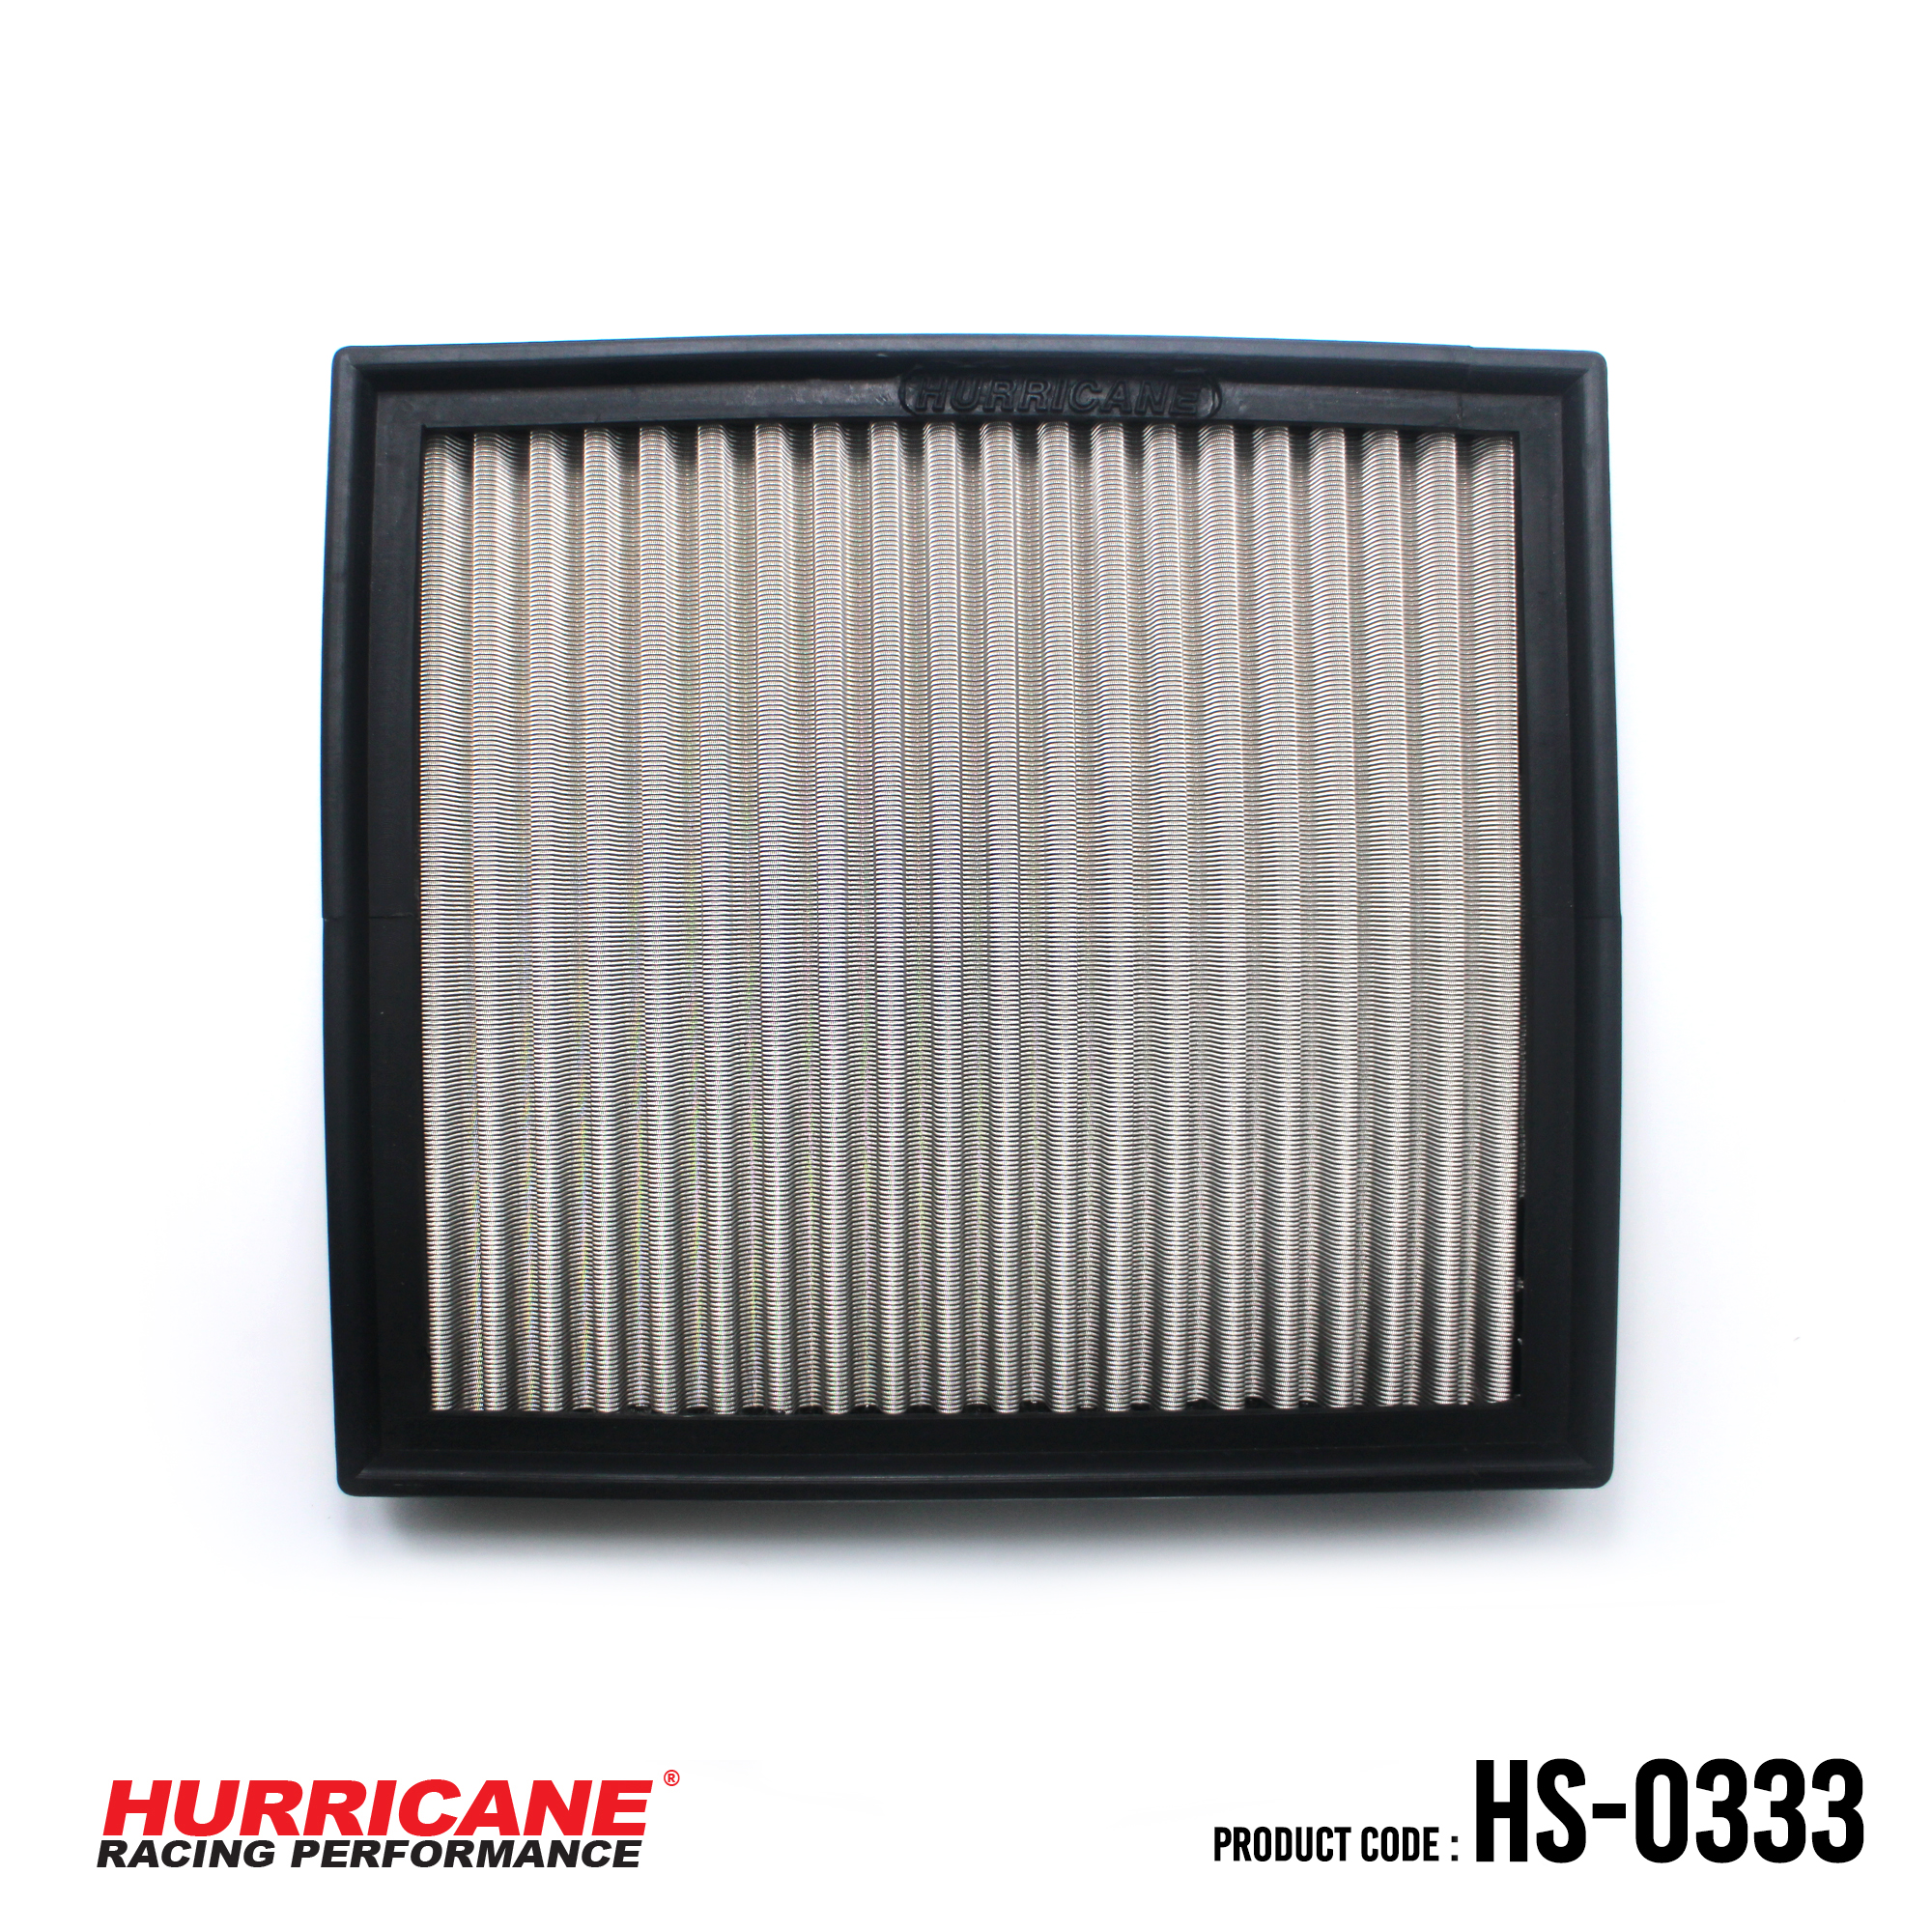 Bmw 328i Gt Hs 0333 Hurricane Stainless Steel Air Filter Auto Siopa